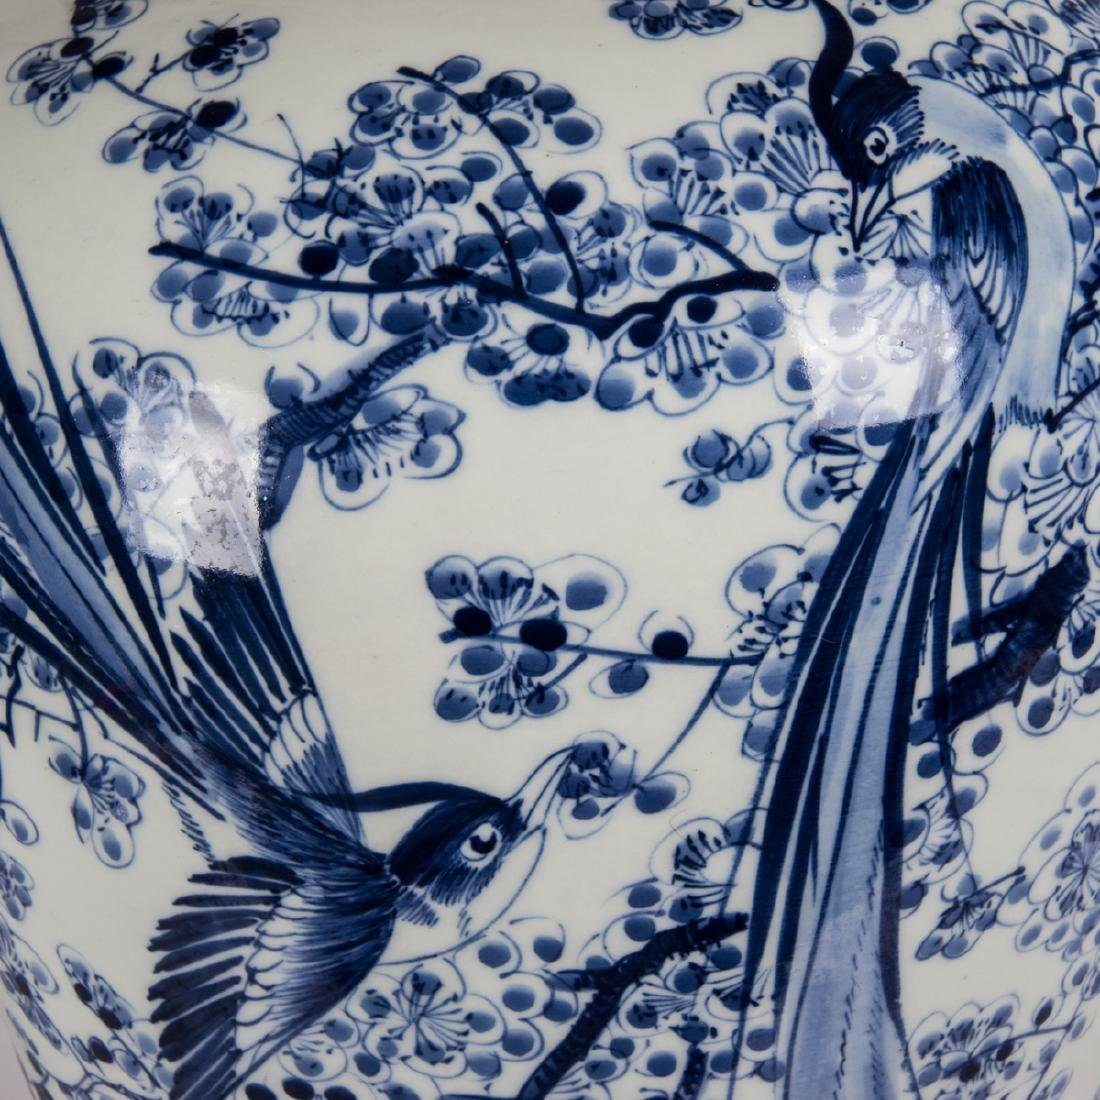 A Chinese Blue and White Porcelain Vase, 20th Century. - 2